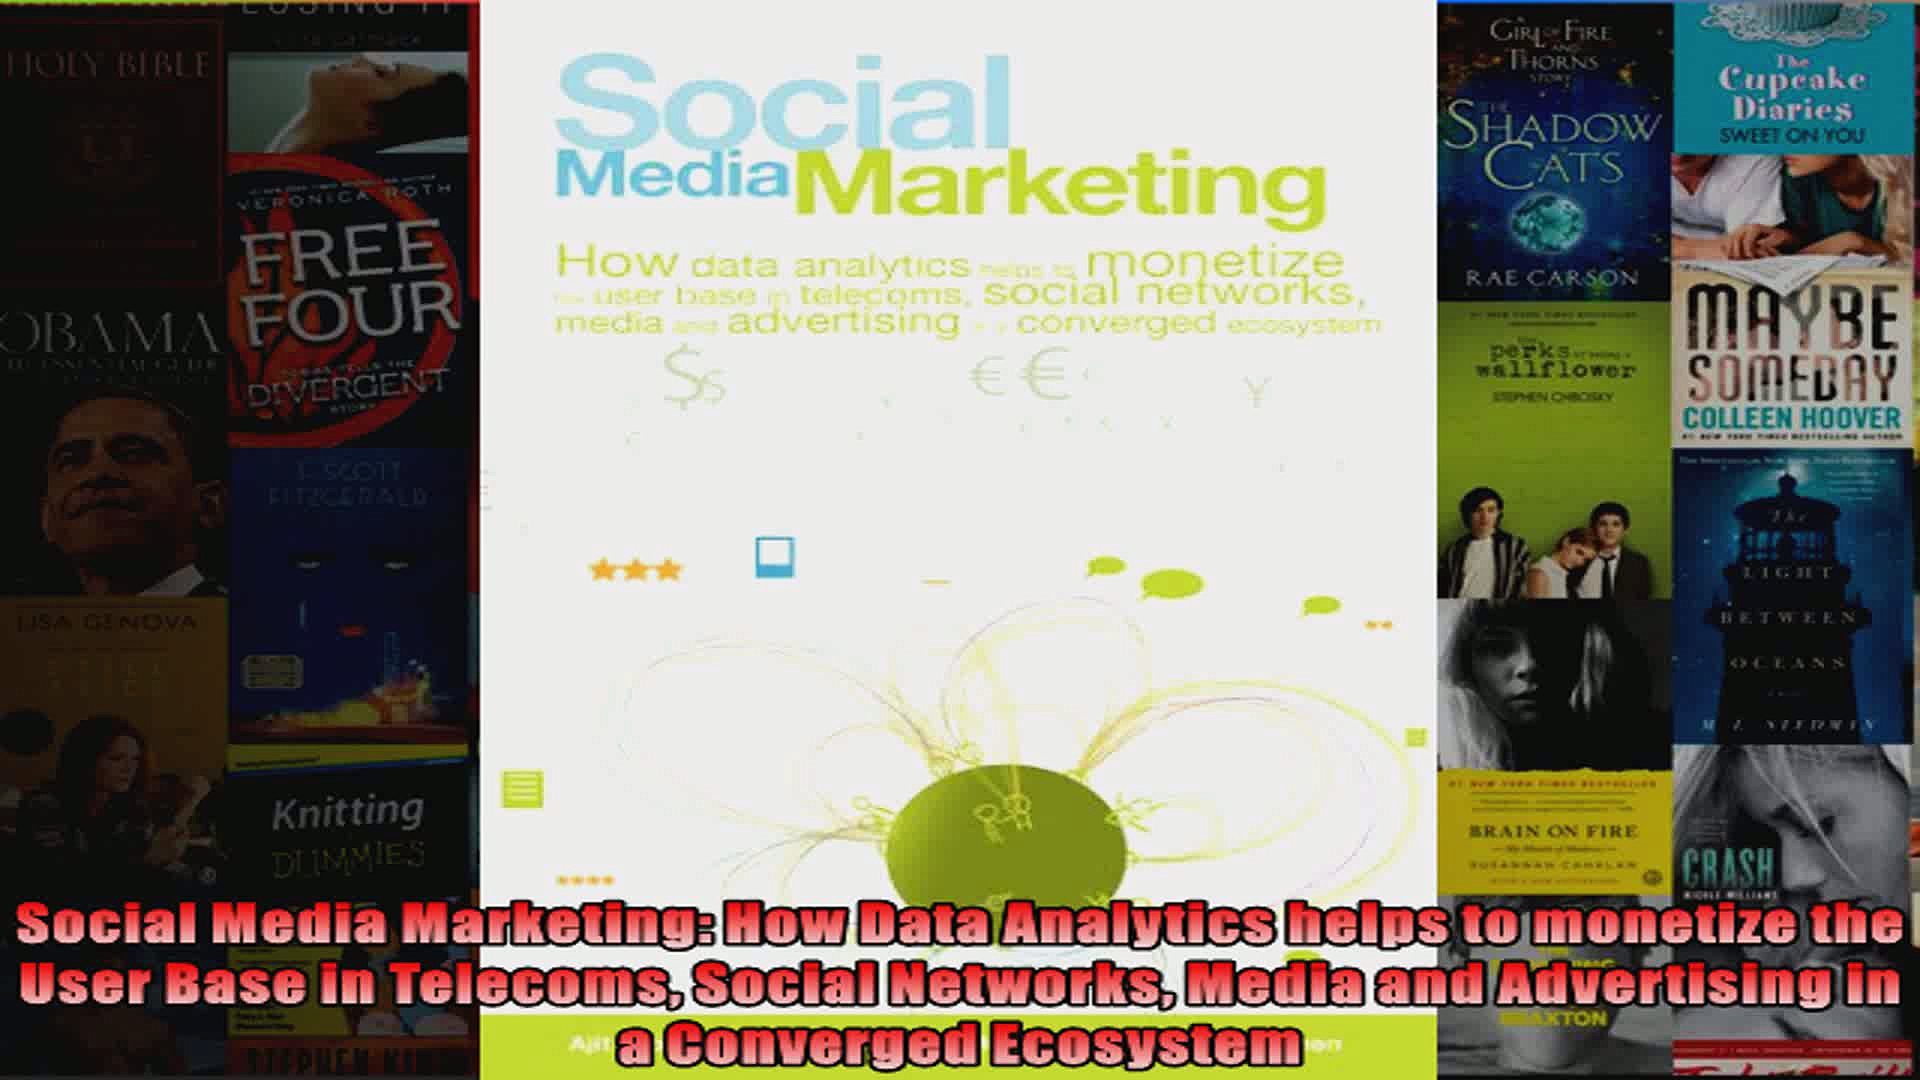 Social Media Marketing How Data Analytics helps to monetize the User Base in Telecoms